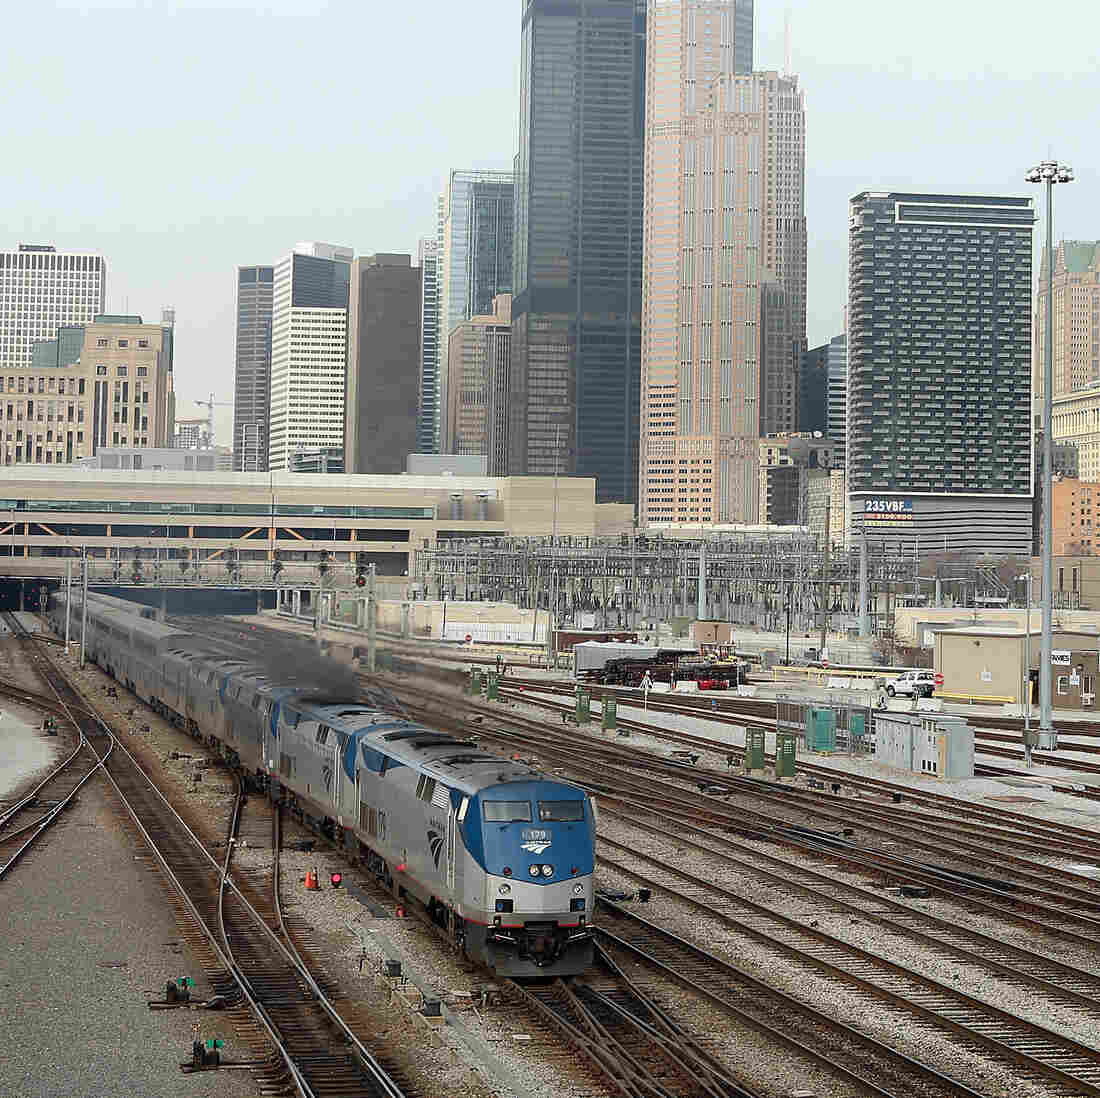 An Amtrak train leaves Chicago's Union Station on its way to Los Angeles.